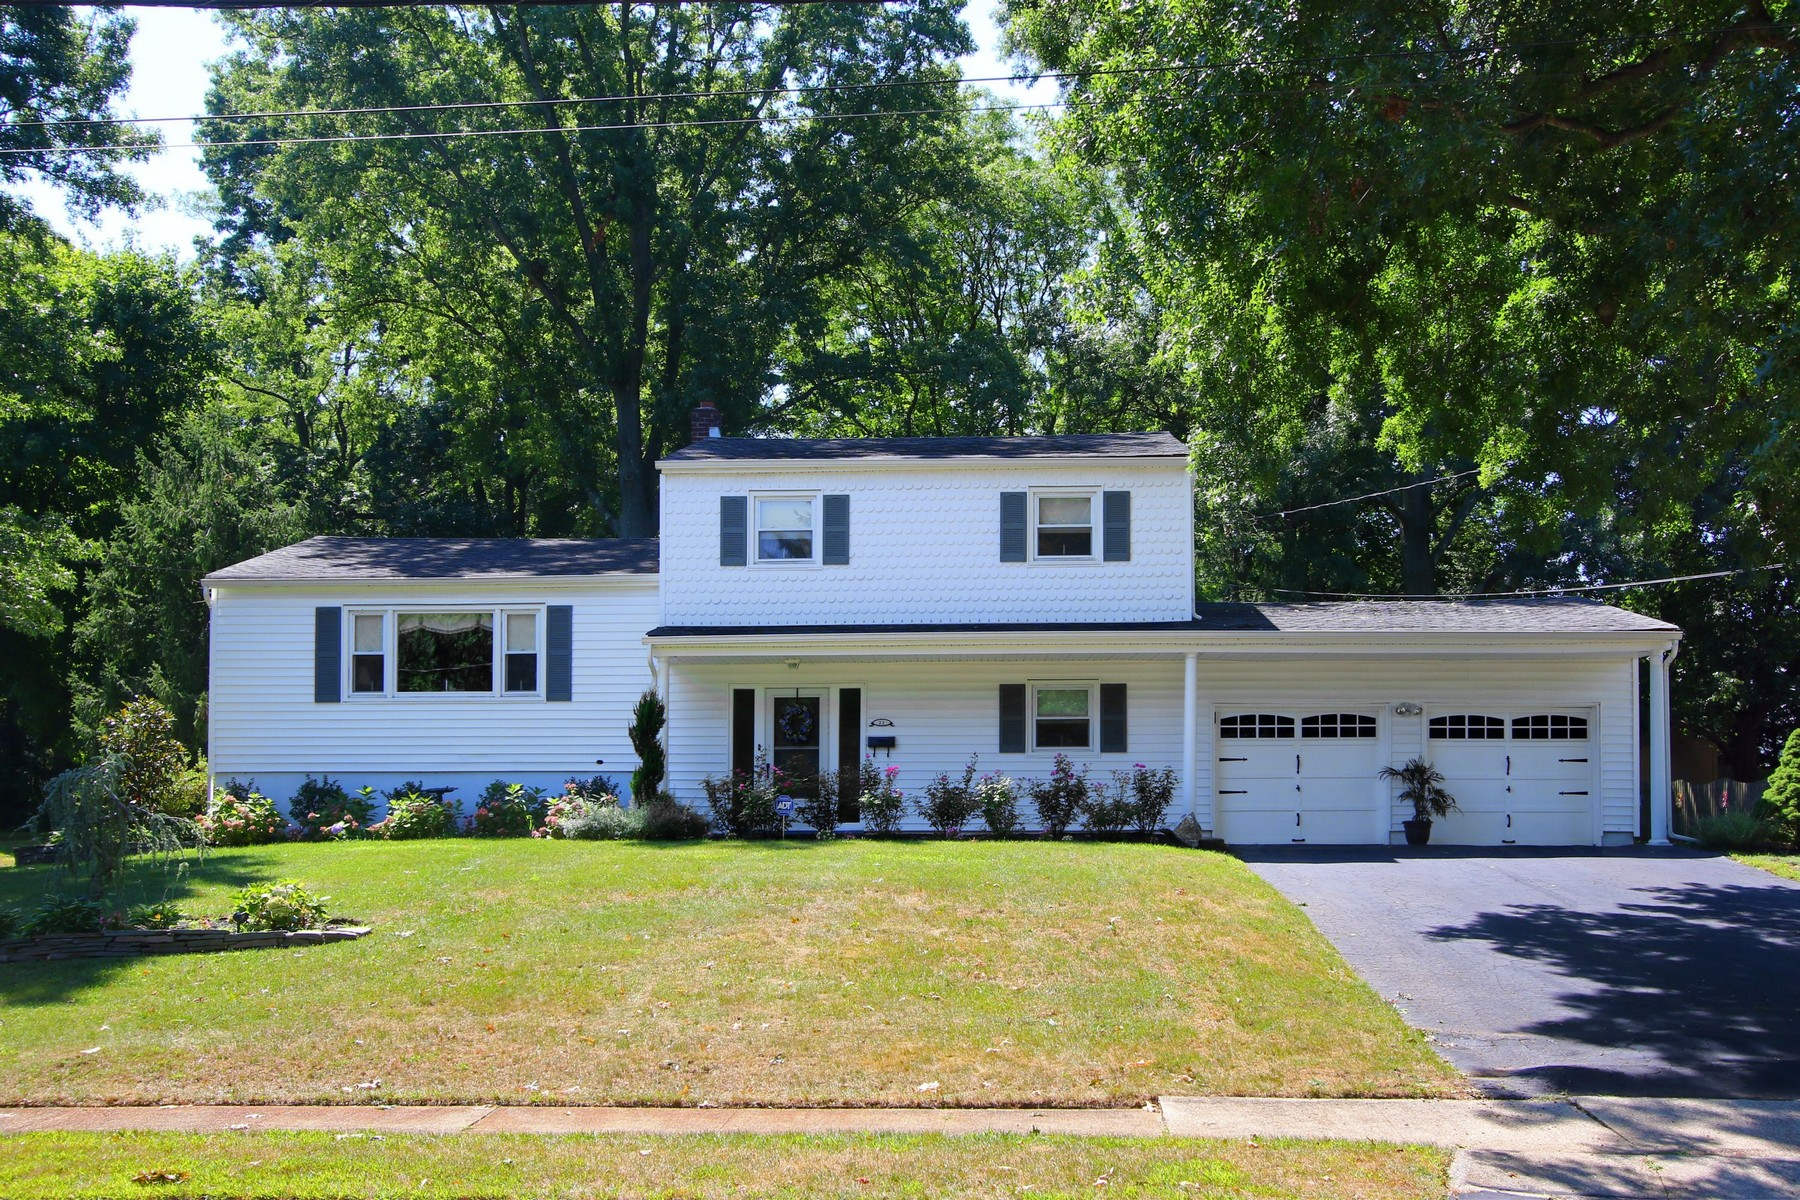 Single Family Home for Sale at Perfect Home 22 Zerman Dr. Middletown, New Jersey 07748 United States